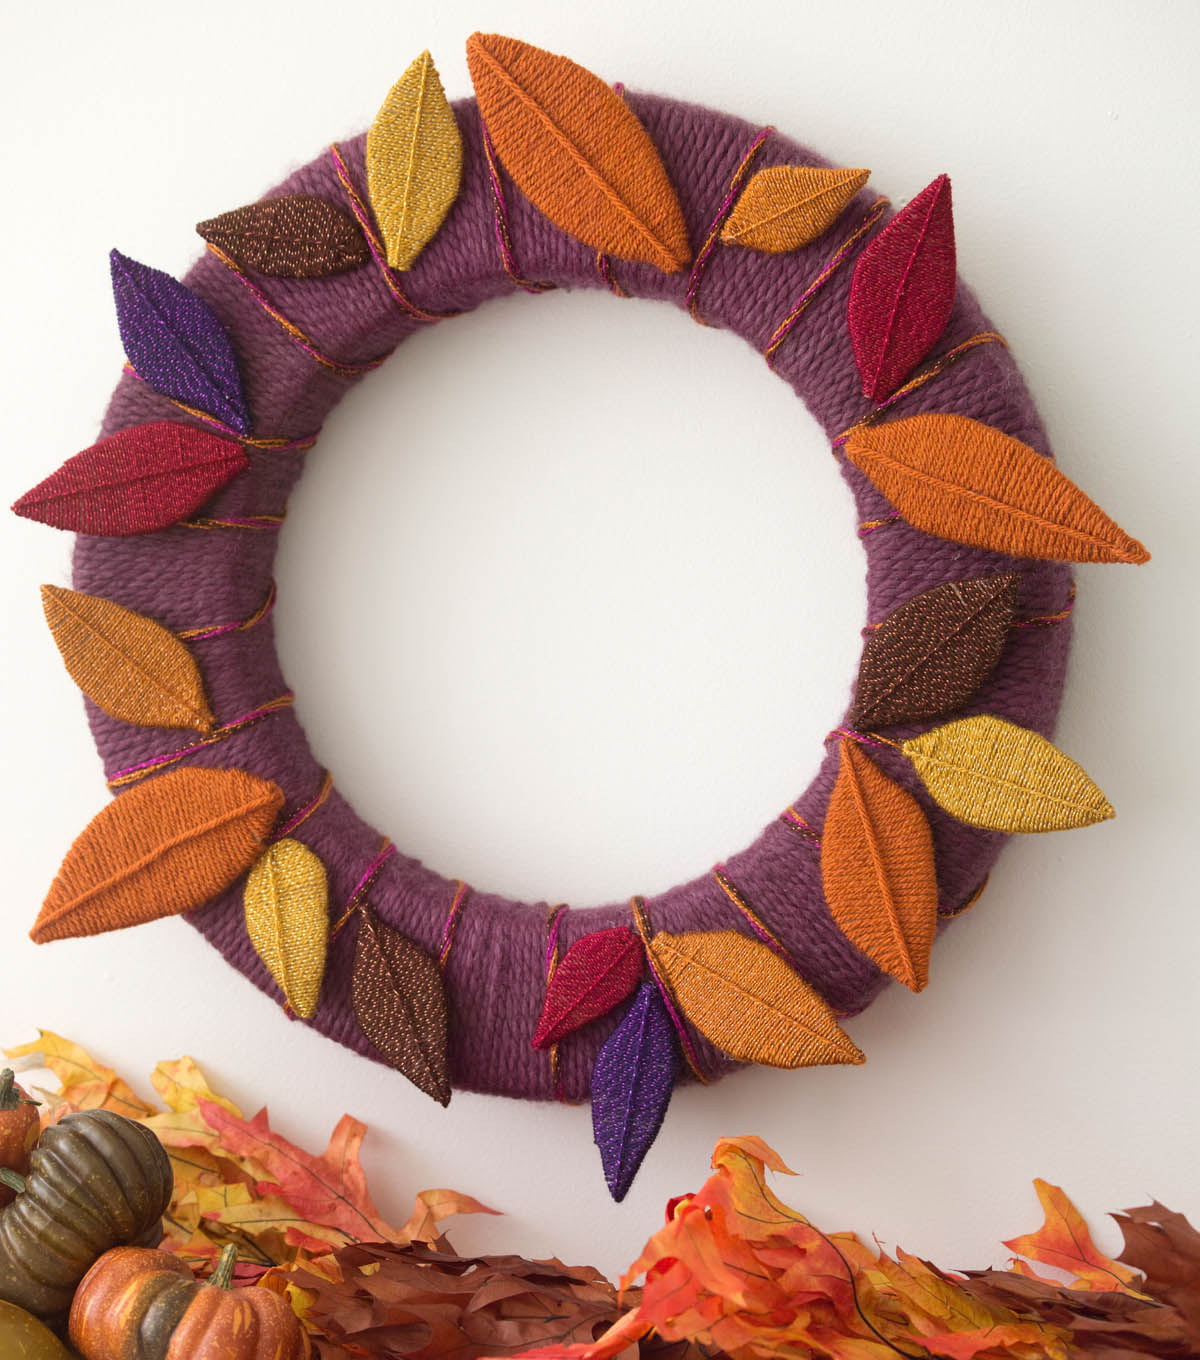 Leaves of Yarn Wreath